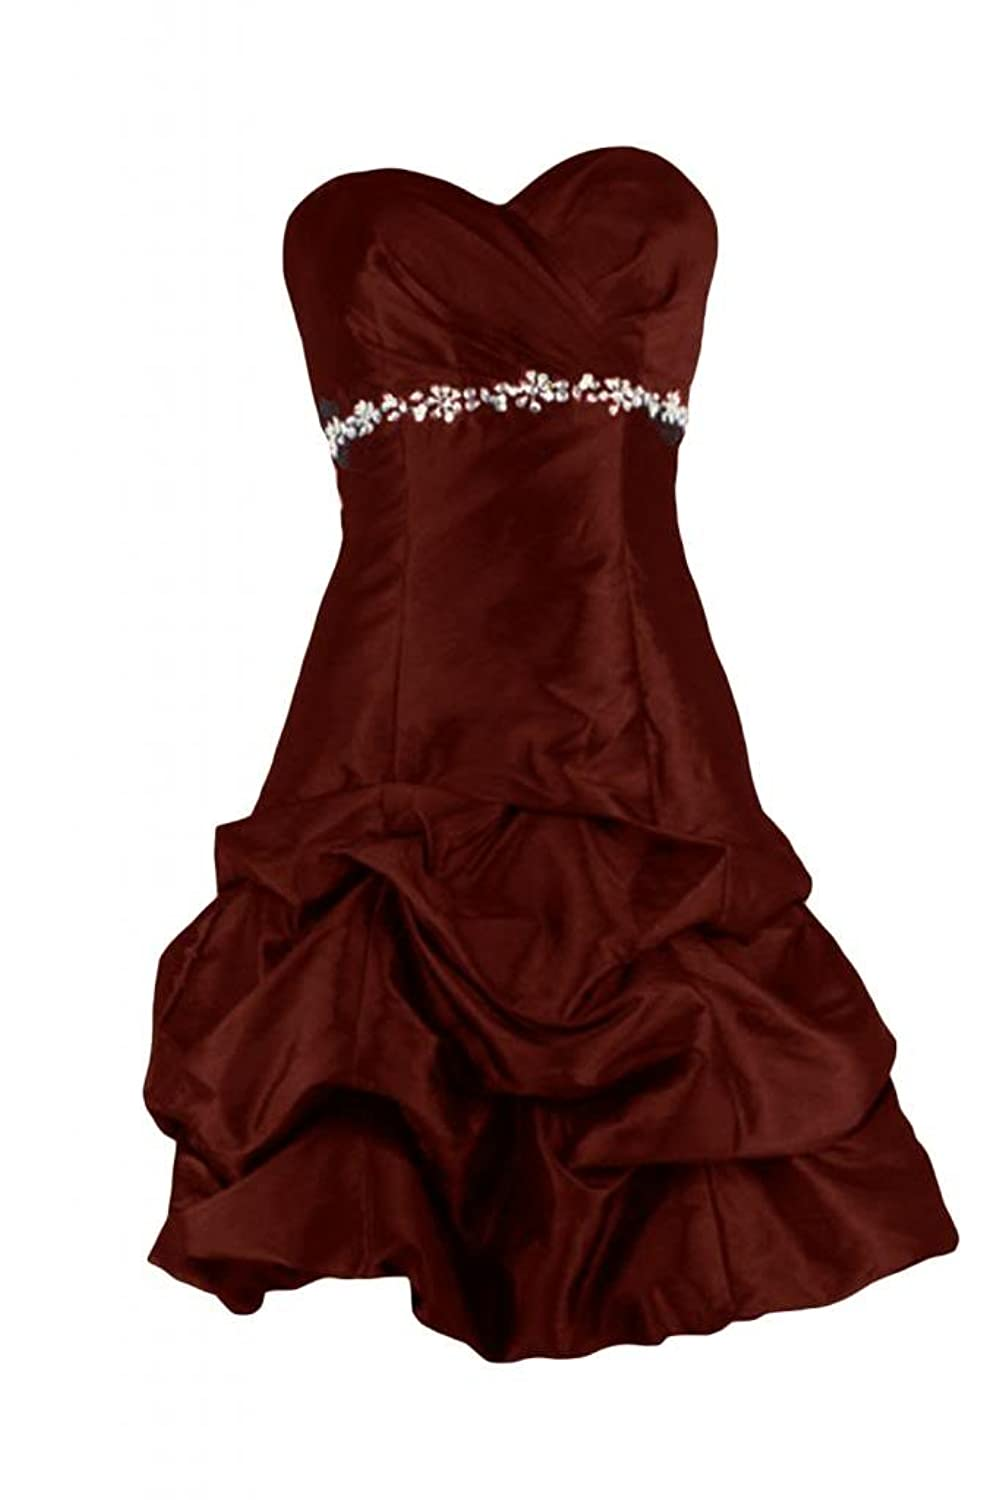 Sunvary Charming Satin Rhinestones A-Line Sweetheart Cocktail Dress Formal Prom Dress